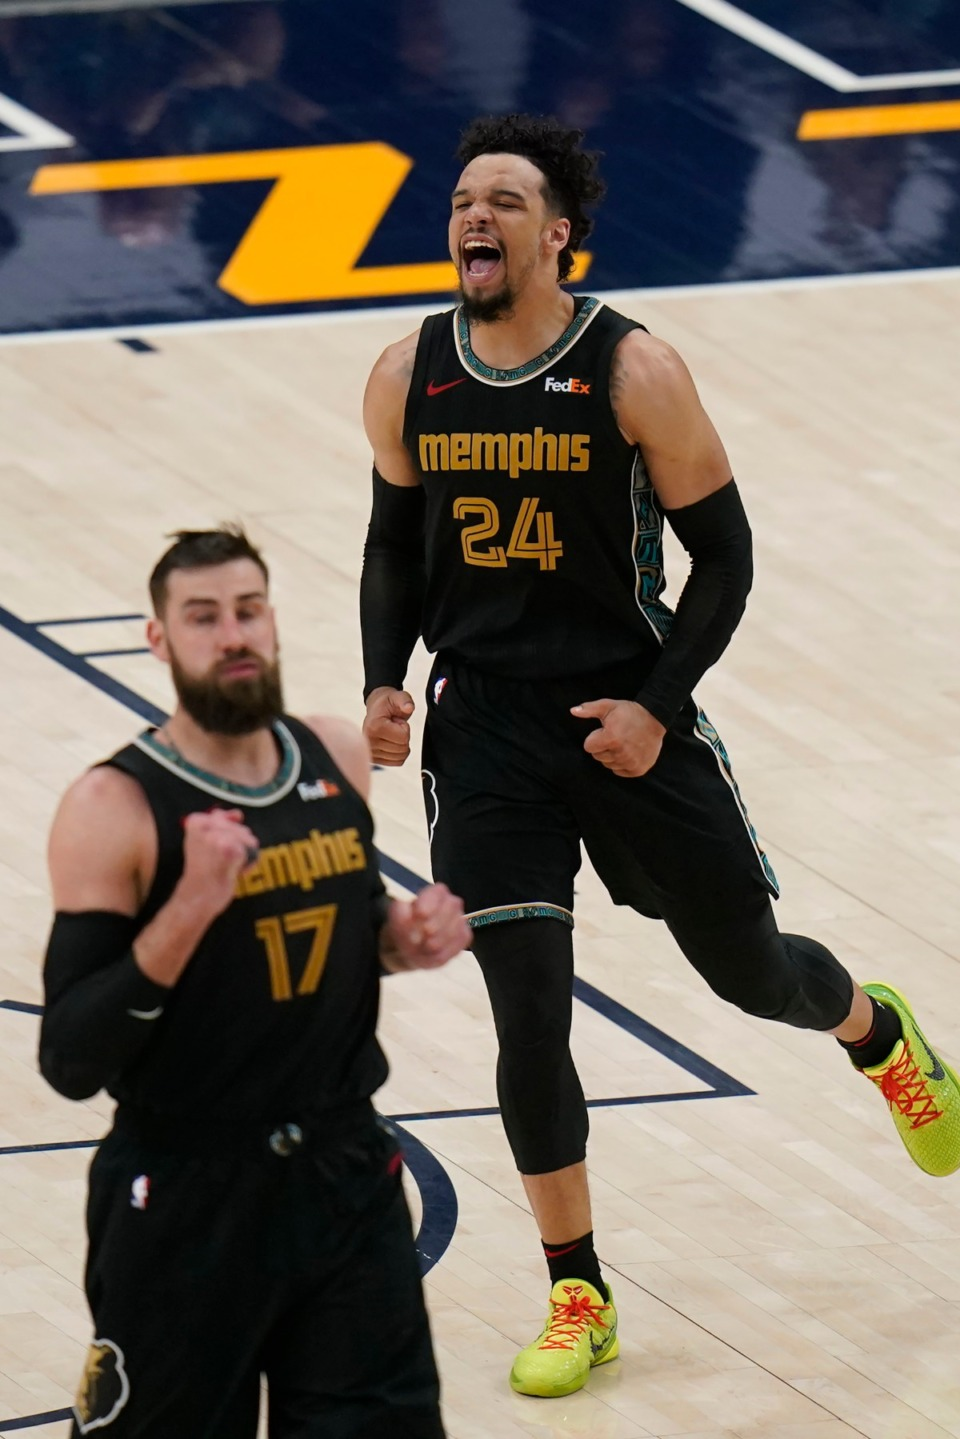 <strong>Memphis Grizzlies' Dillon Brooks (24) celebrates after scoring against the Utah Jazz during the second half of Game 1 of their NBA basketball first-round playoff series Sunday, May 23, 2021, in Salt Lake City.</strong> (Rick Bowmer/AP)